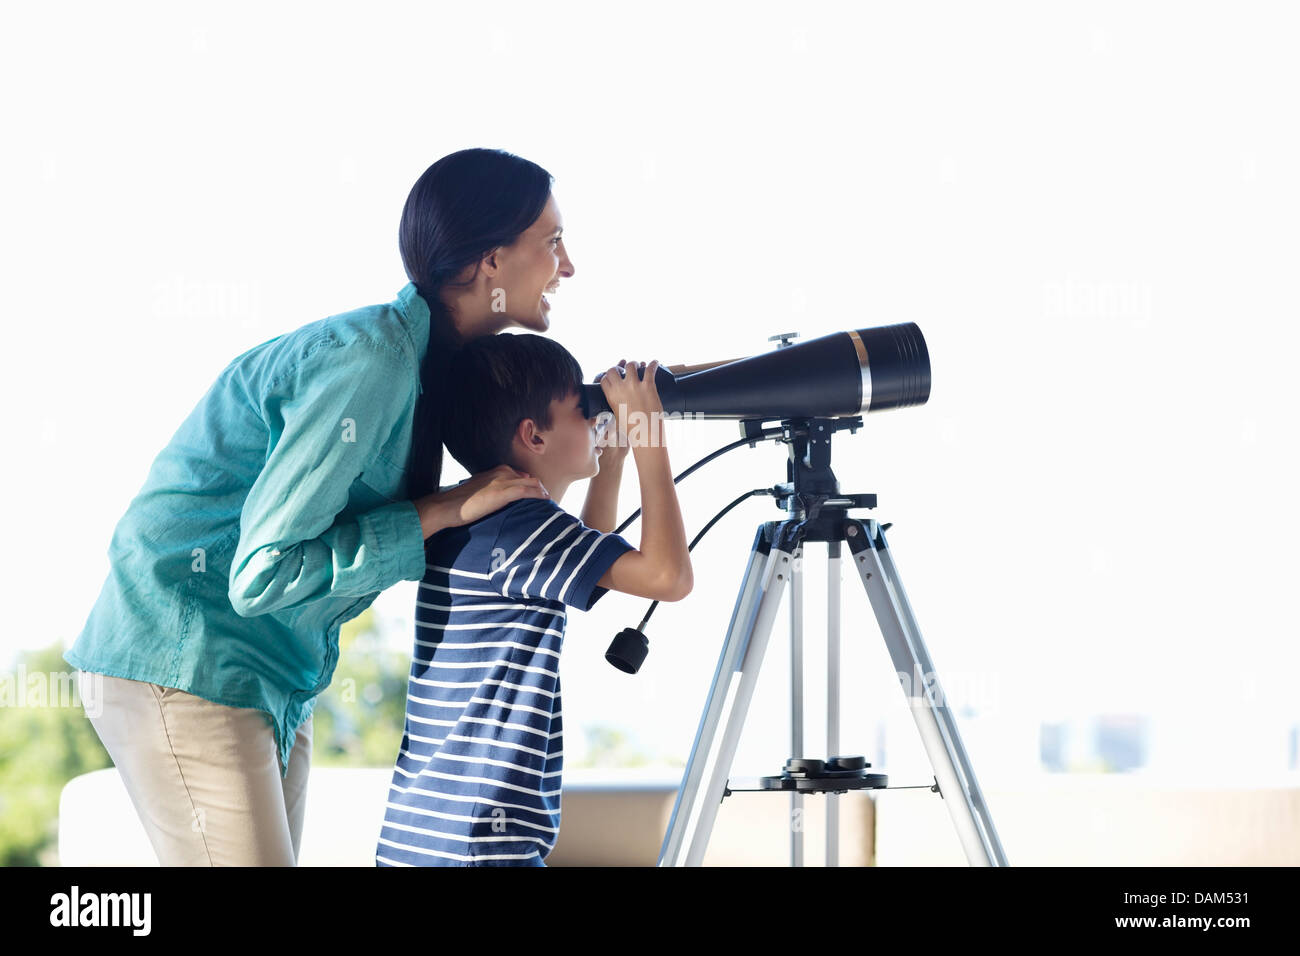 Mother and son using telescope - Stock Image